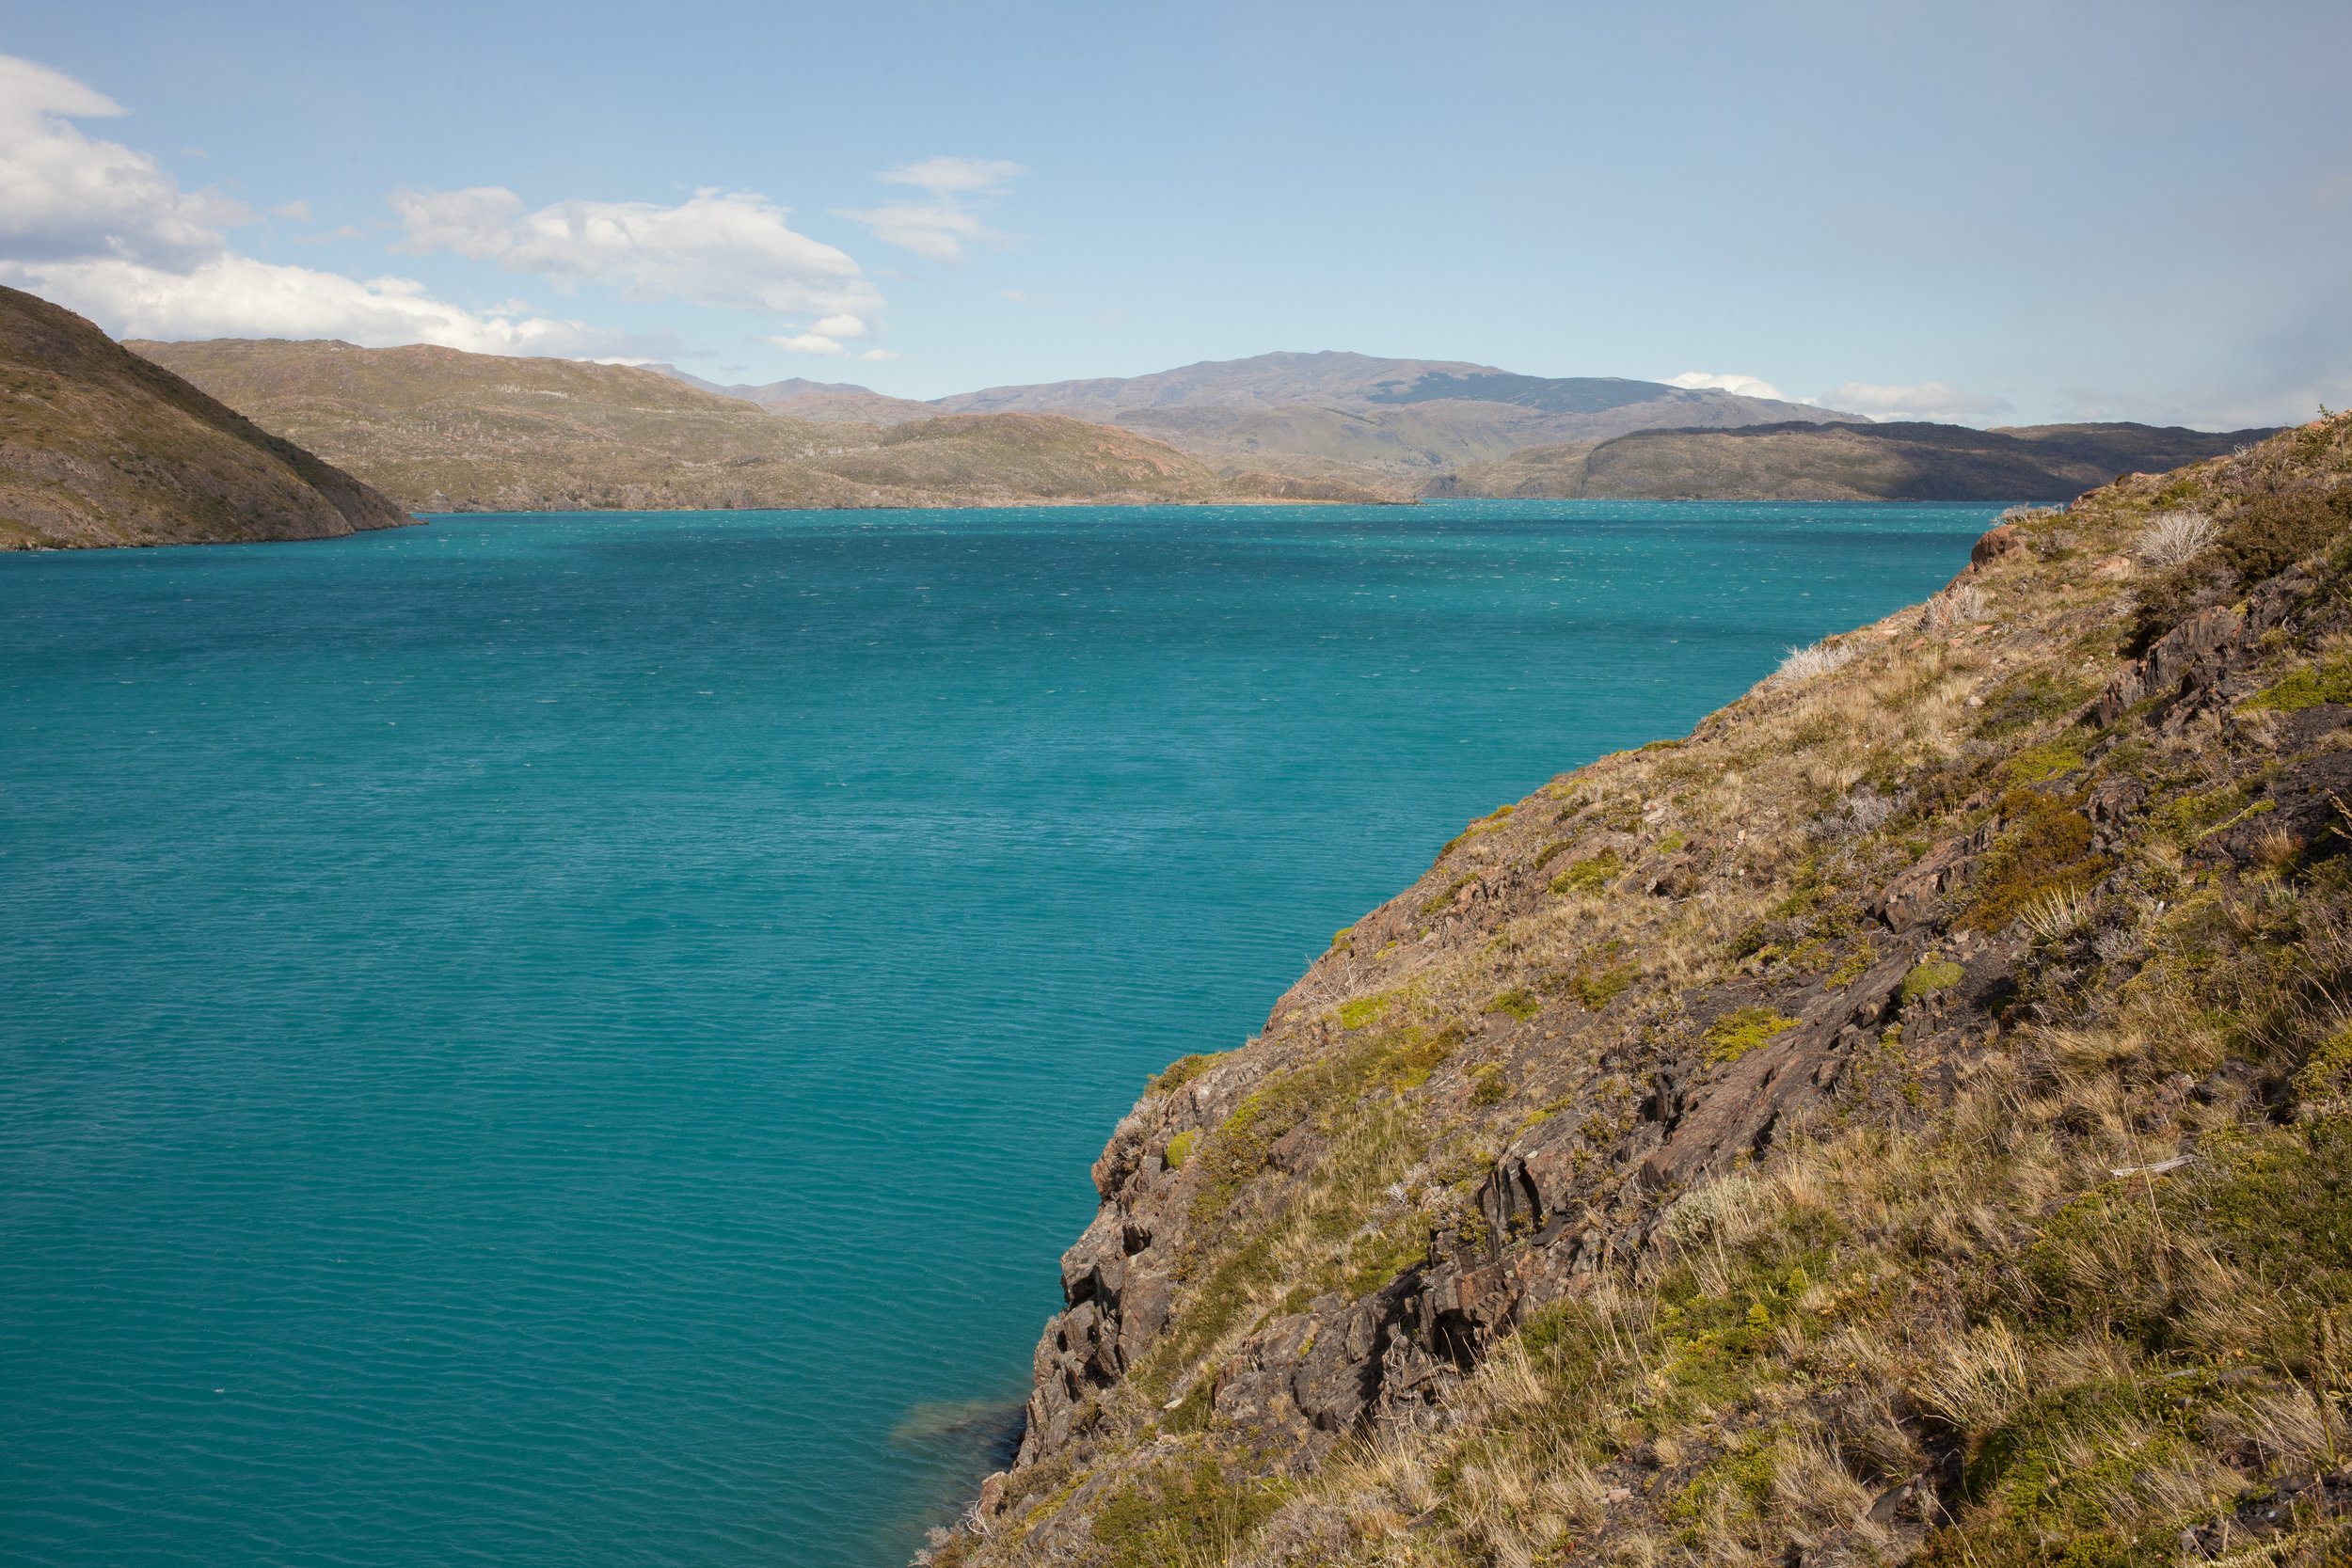 Pehoé Lake shivers with small waves caused by the fetch from the constant wind.    Peho  é   is a beautiful shade of blue and looks incredibly striking against the green hillsides surrounding the water.